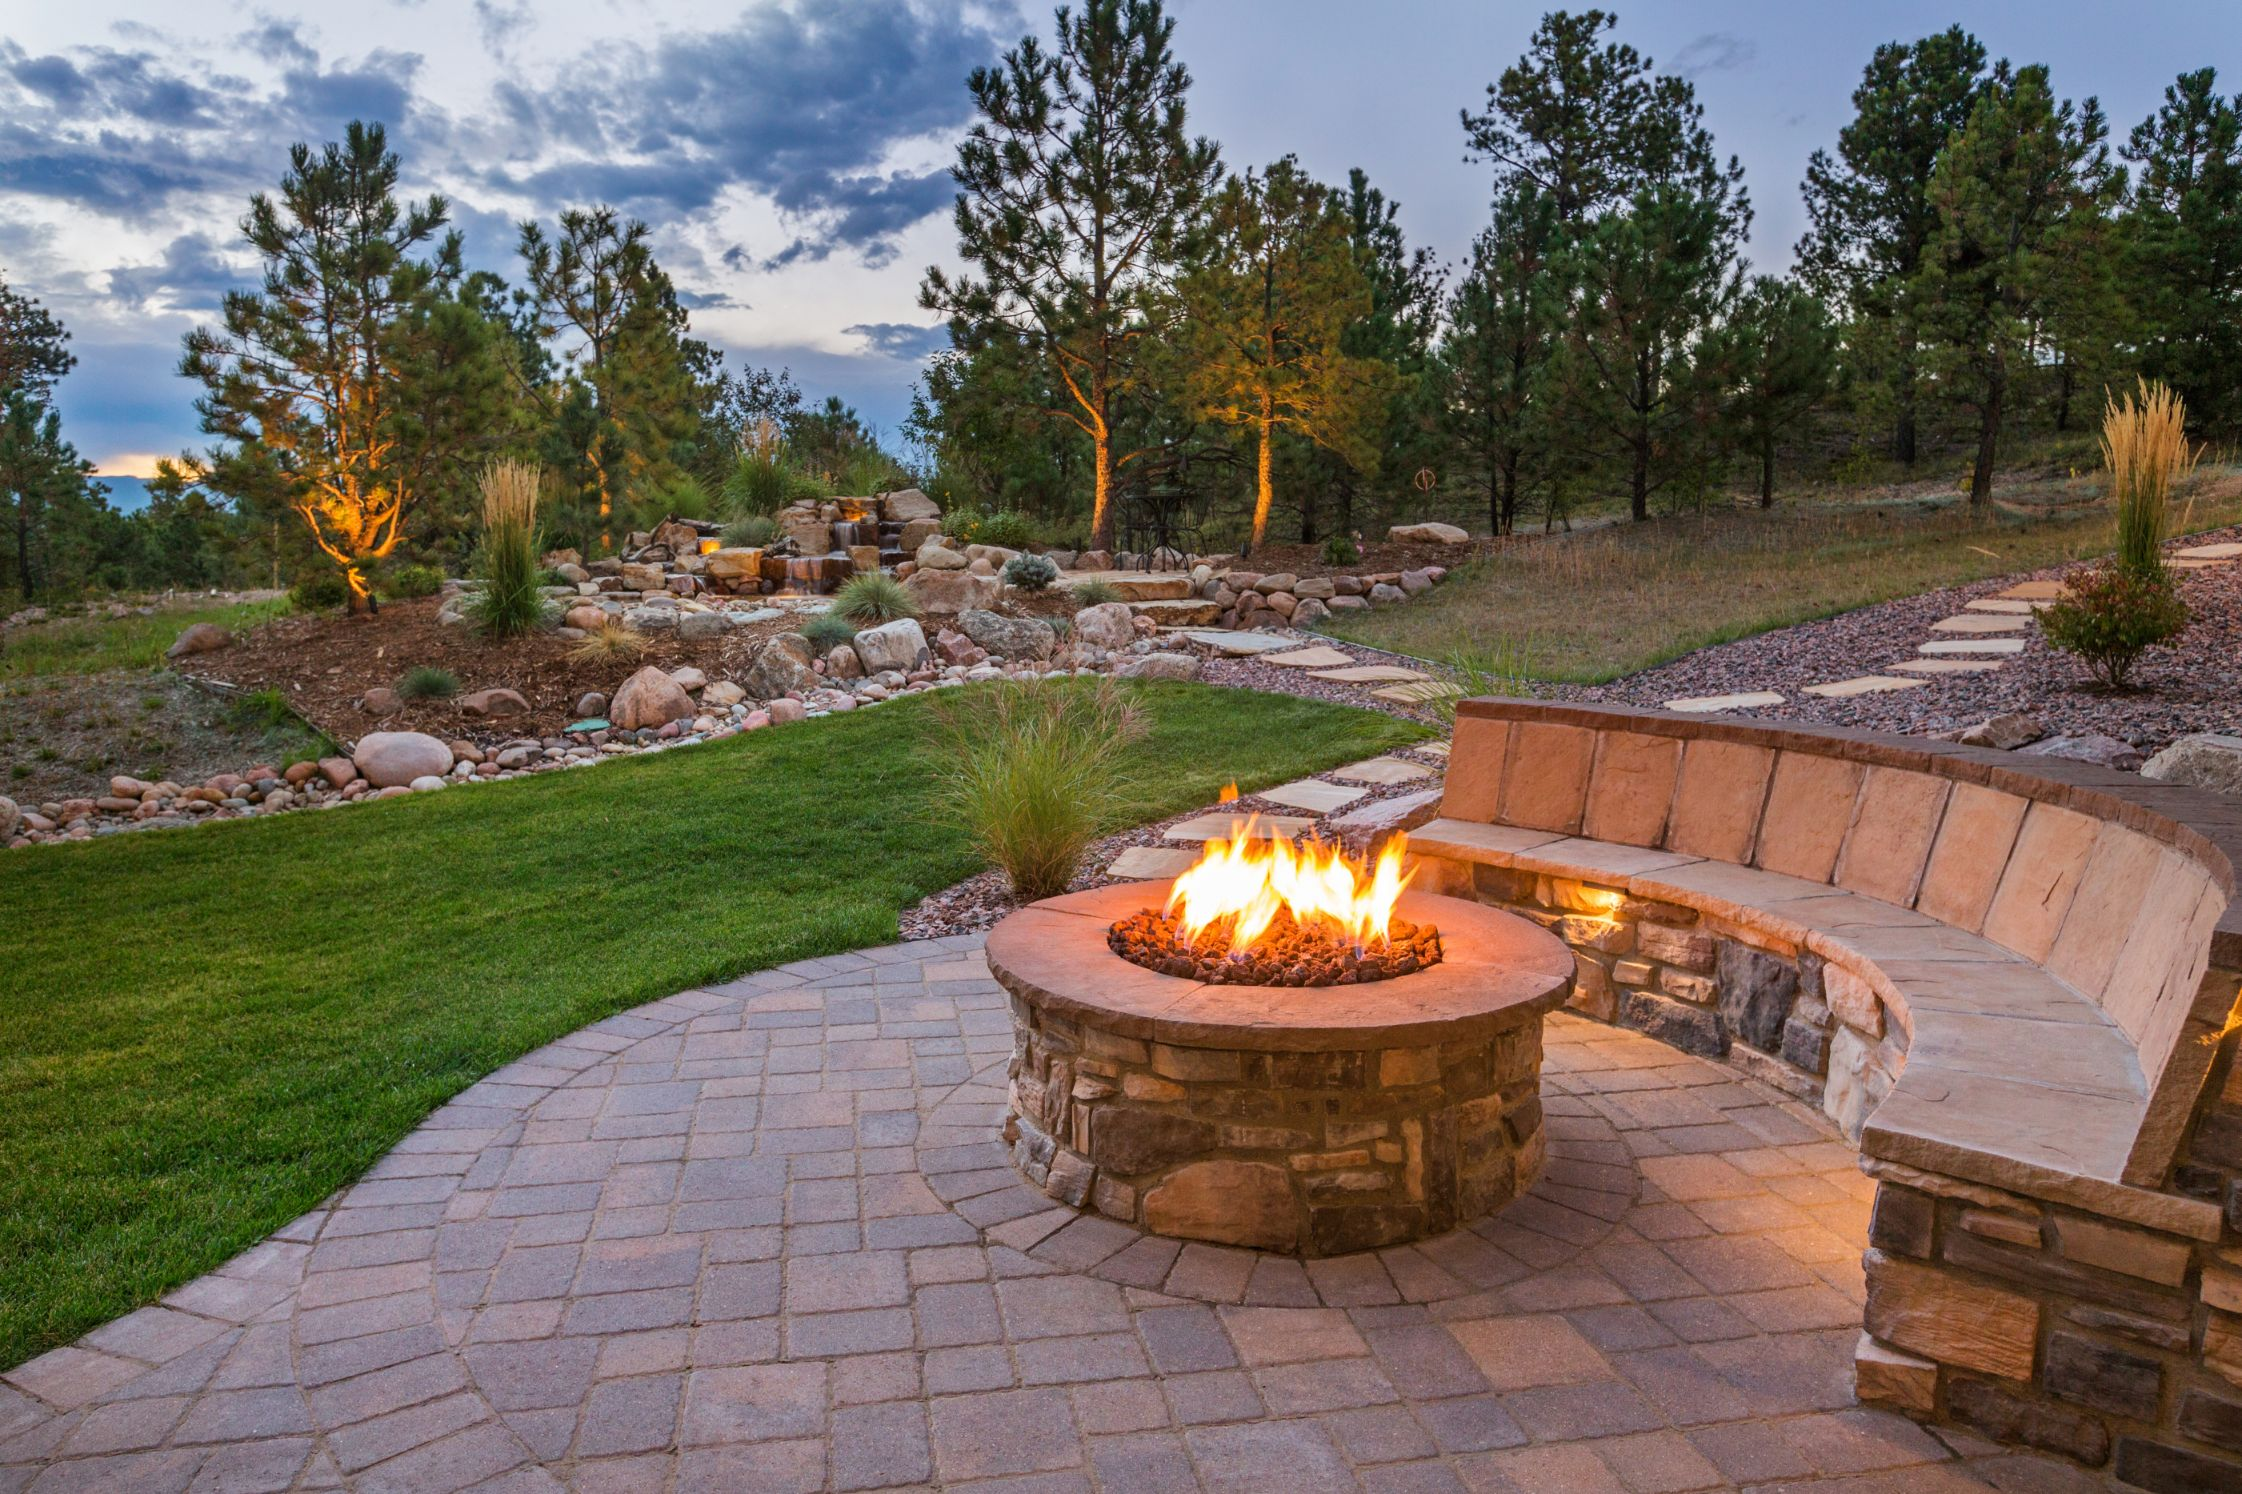 Picking The Best Colors For Outdoor Spaces